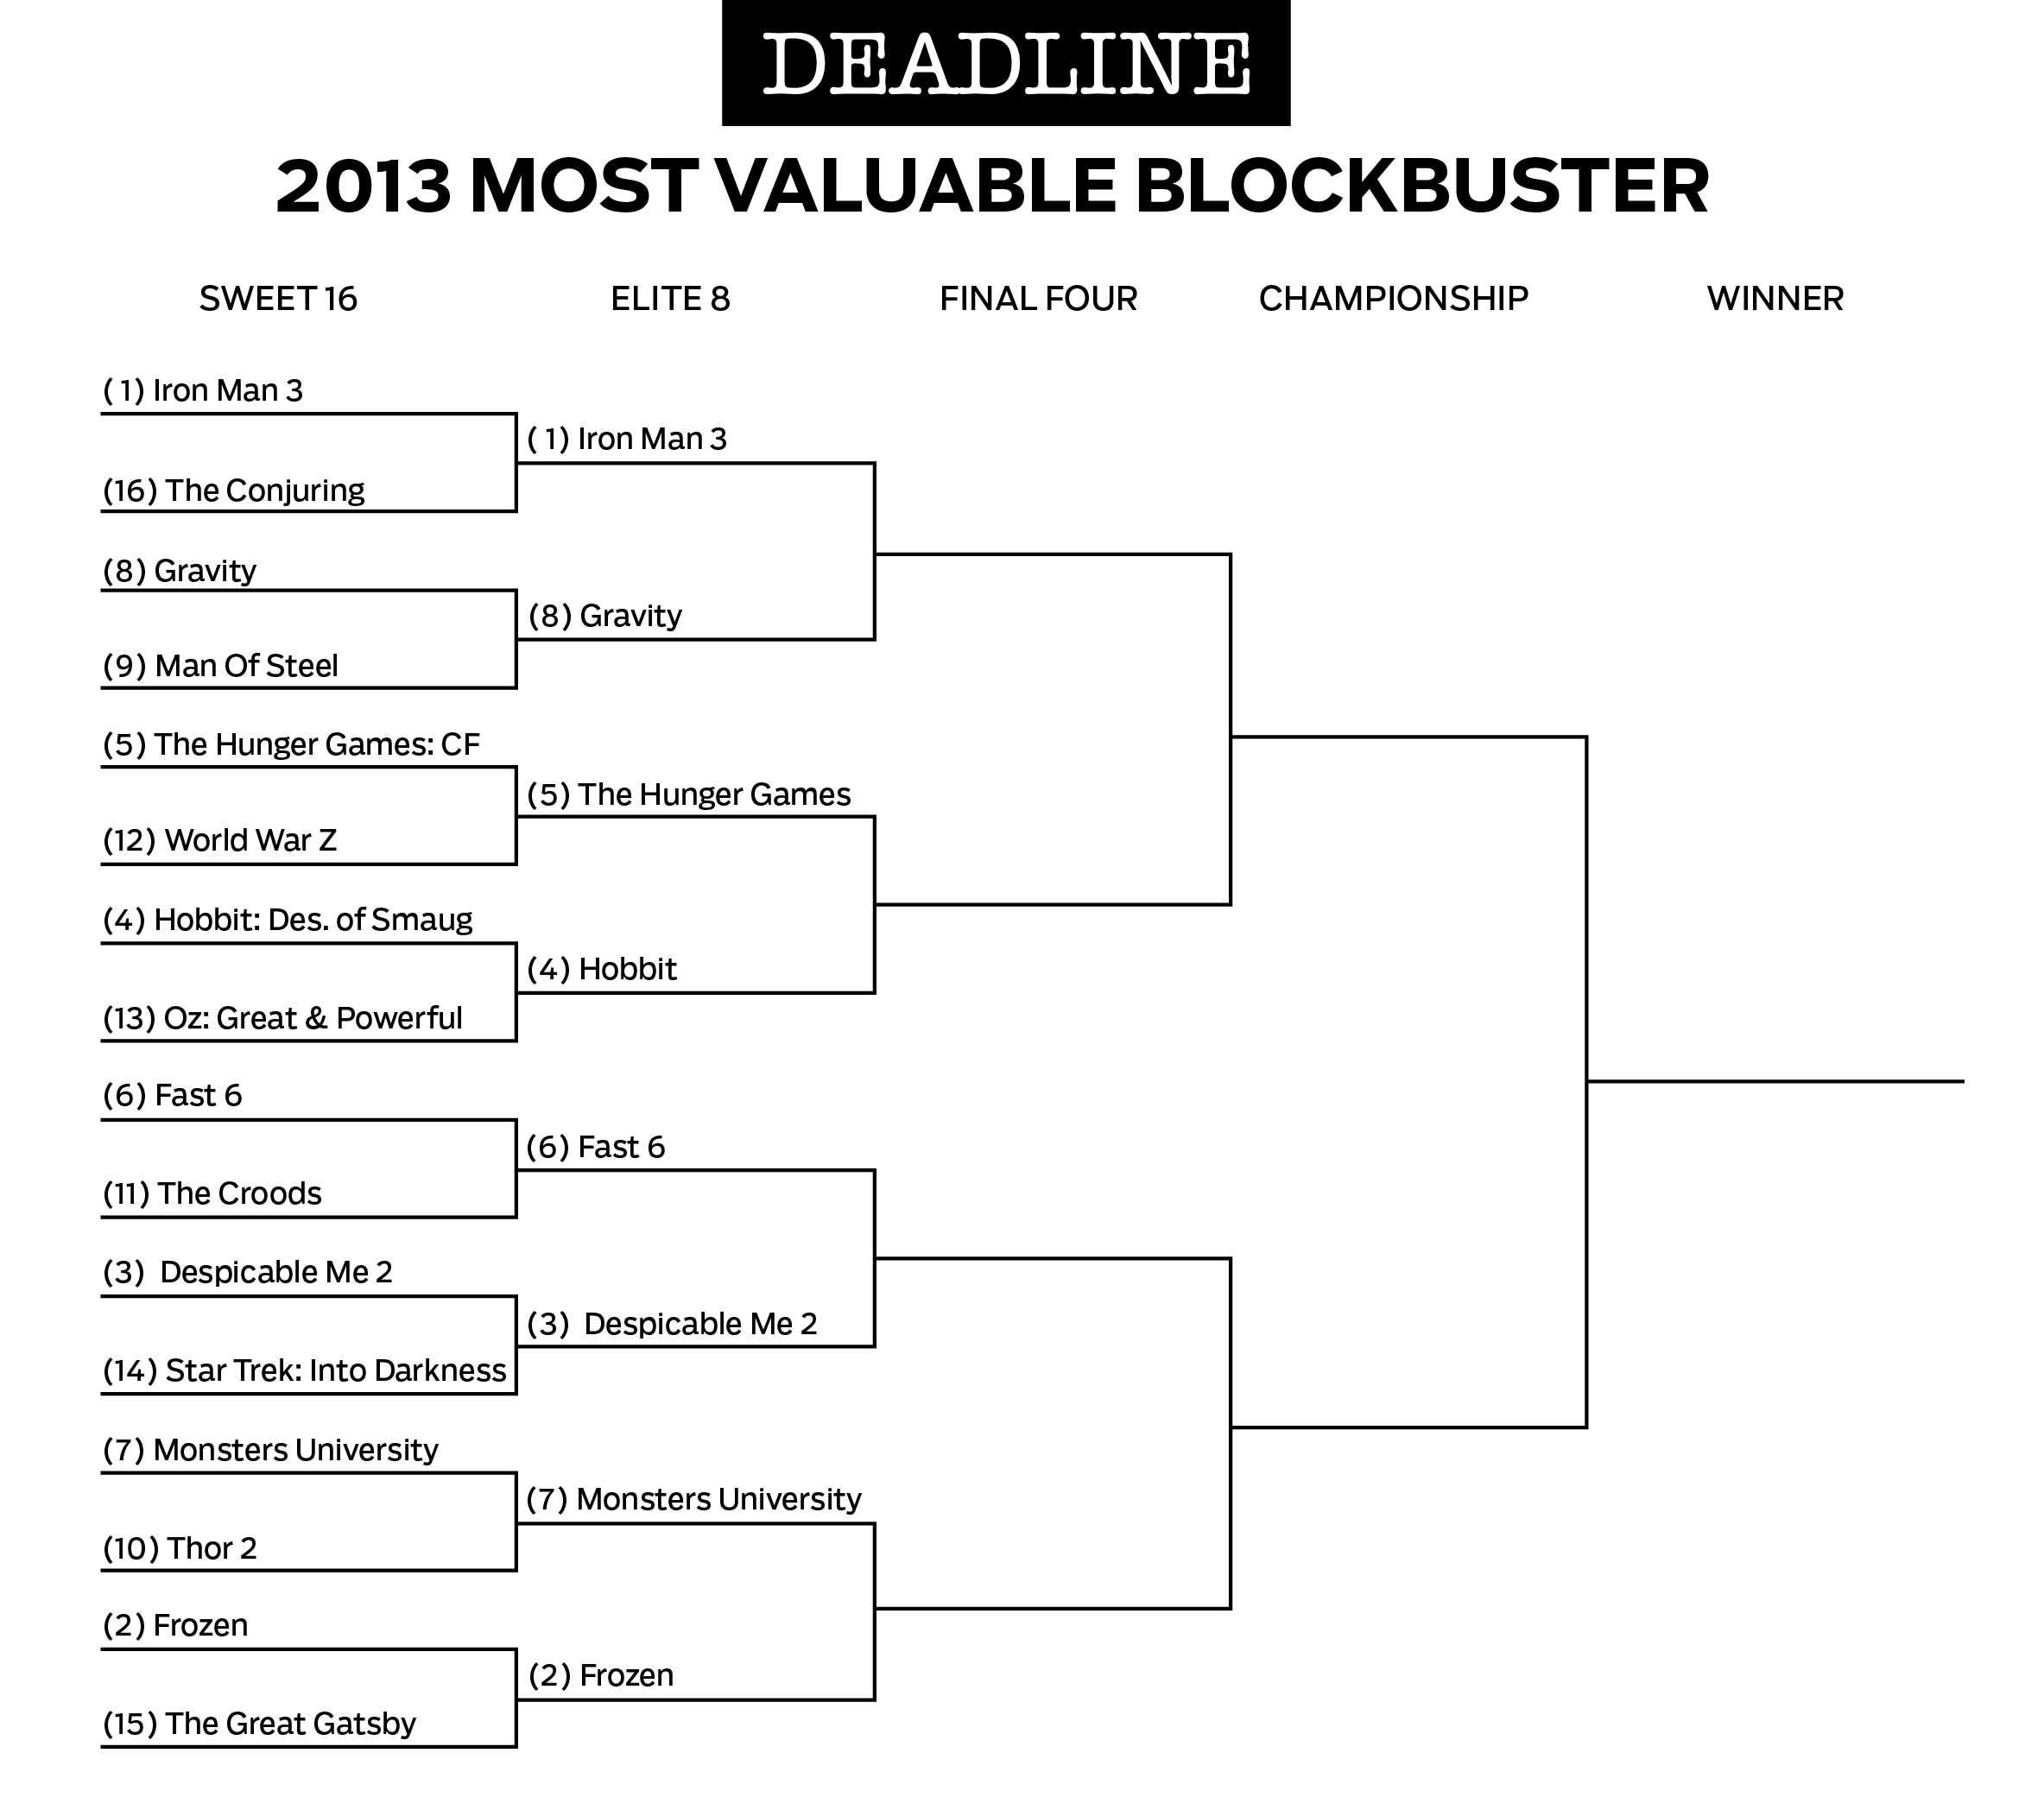 015 Books Vs Movies Essay Hunger Games Deadlinebracket